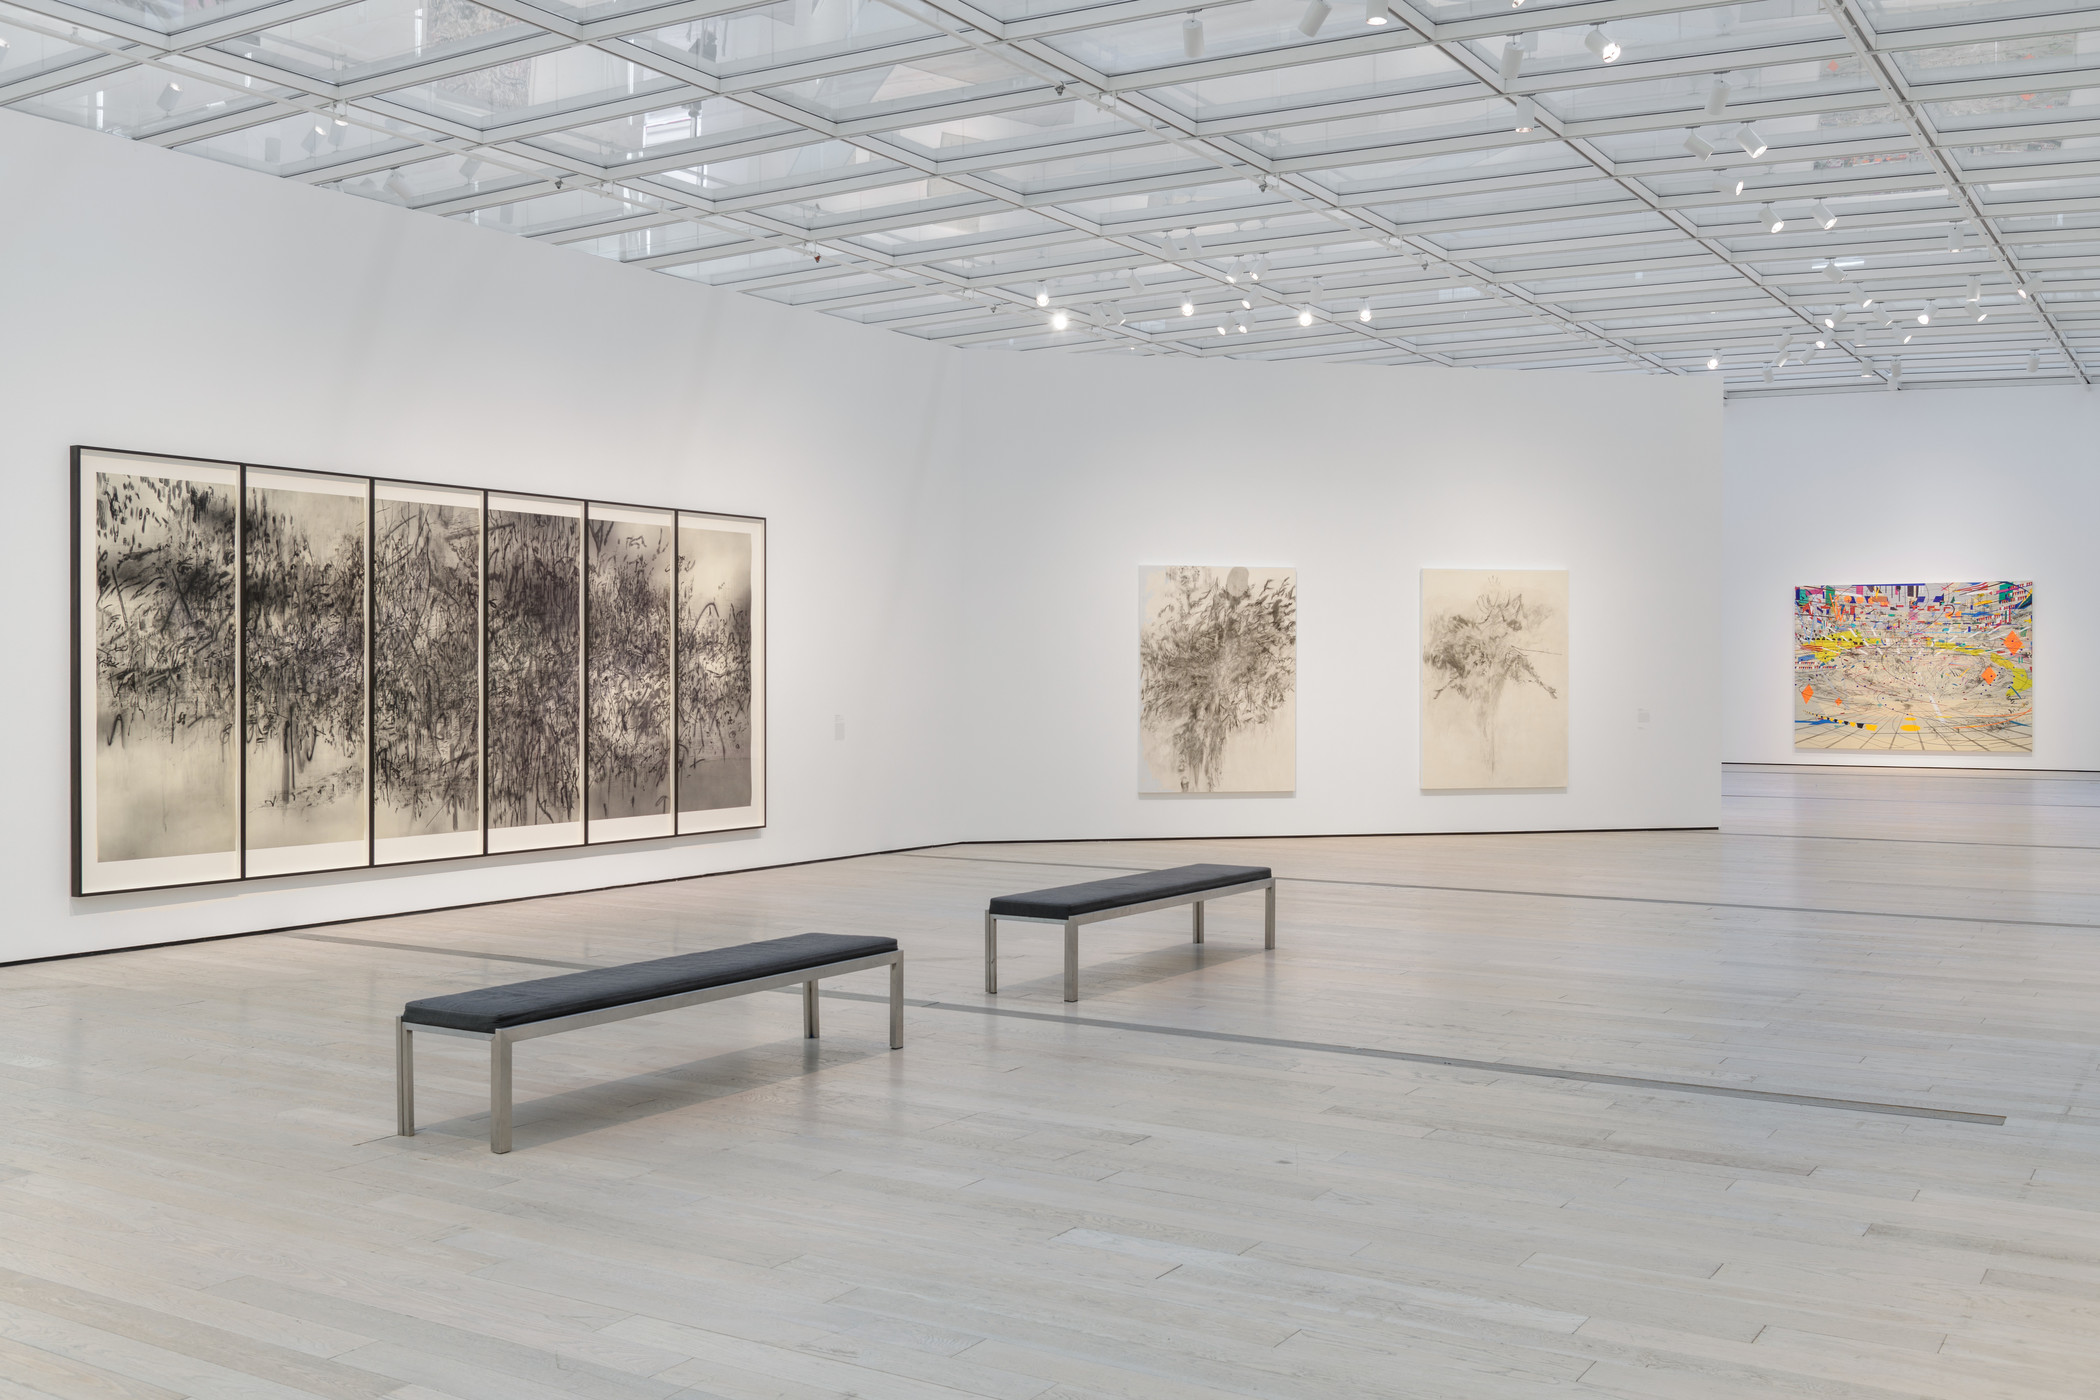 "Installation photograph, Julie Mehretu, Los Angeles County Museum of Art, November 3, 2019–May 17, 2020, art © Julie Mehretu, photo © Museum Associates/LACMA. From left: Epigraph, Damascus, 2016, Los Angeles County Museum of Art, gift of Kelvin and Hana Davis through the 2018 Collectors Committee; Being Higher II, 2013, Collection of Susan & Larry Marx; courtesy Neal Meltzer Fine Art, New York; Being Higher I, 2013, Tiago Ltd: ""The Tiqui Atencio Collection""; Stadia II, 2004, Carnegie Museum of Art, Pittsburgh, gift of Jeanne Greenberg Rohatyn and Nicolas Rohatyn and A. W. Mellon Acquisition Endowment Fund 2004.50"